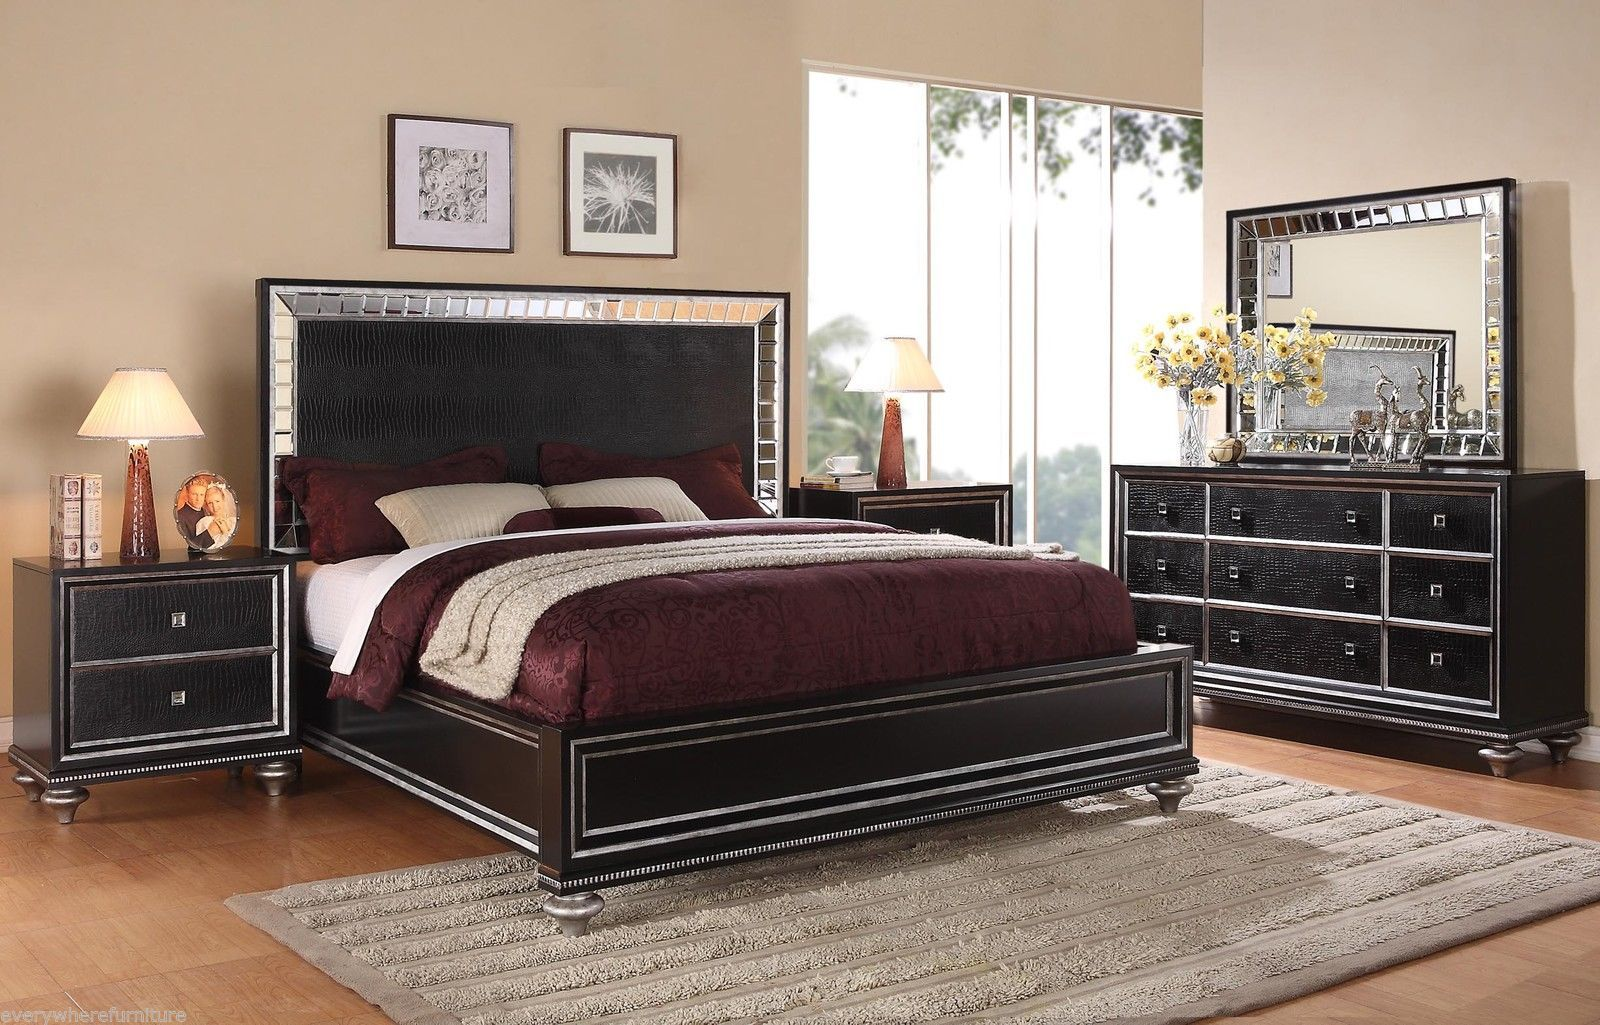 Wynwood Glam Black Mirrored King Size Mansion Bed Bedroom